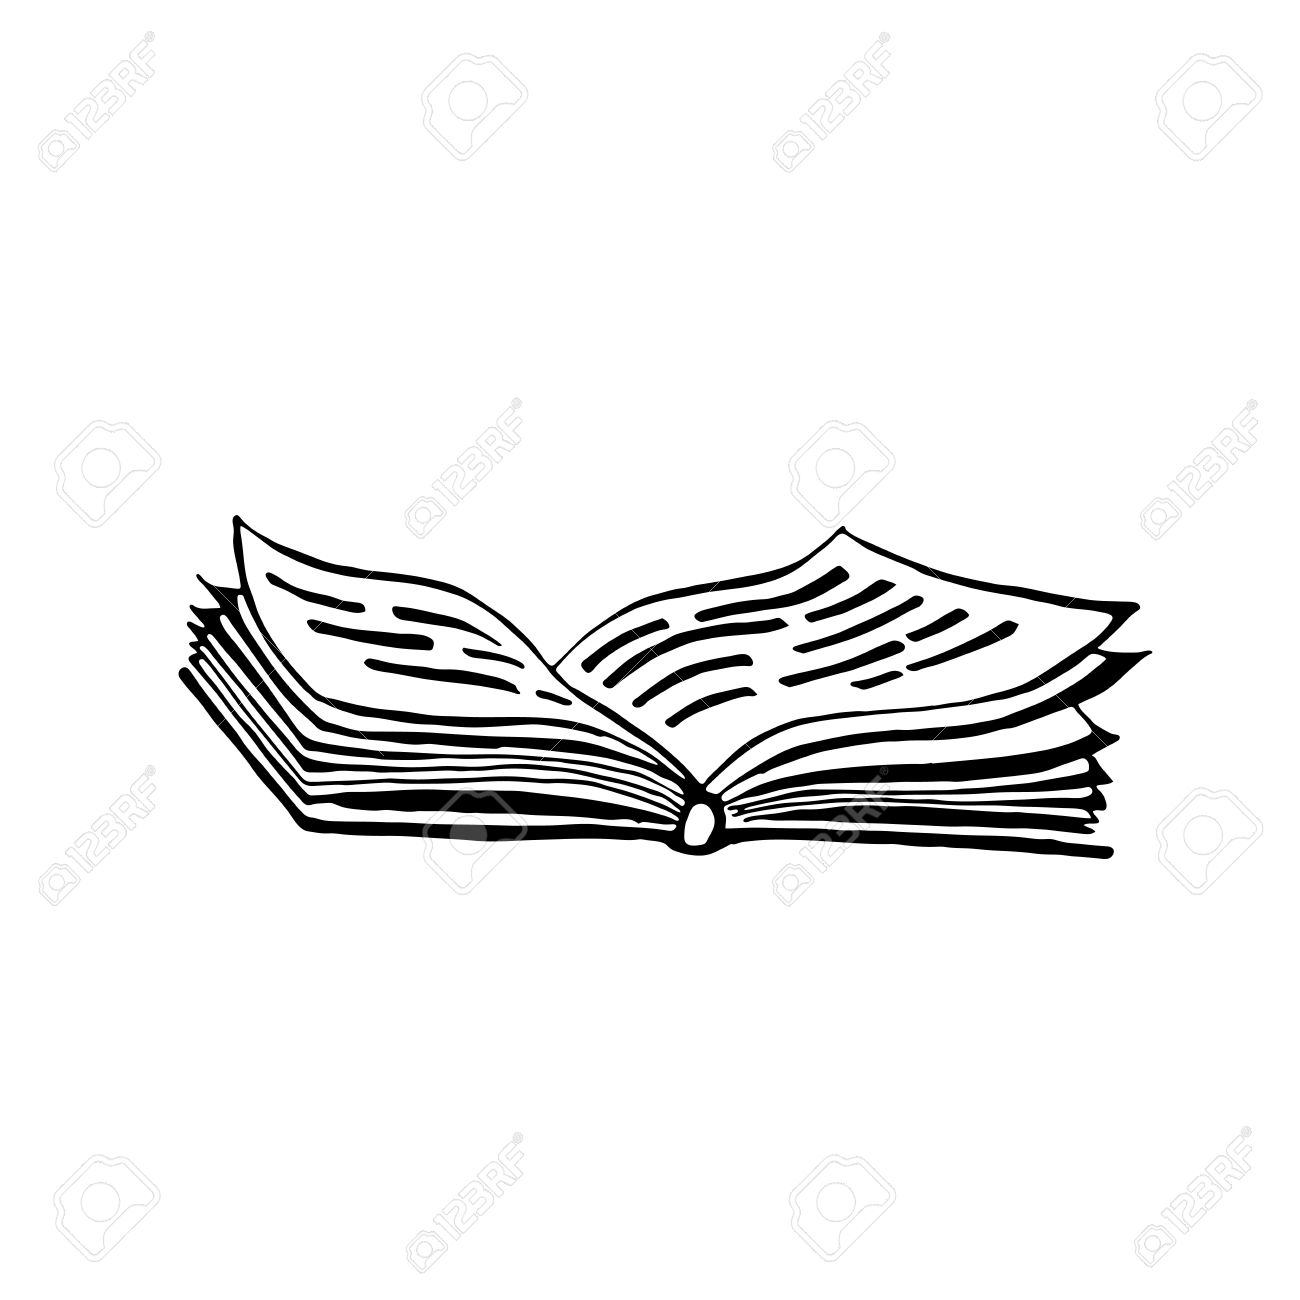 An open book with text vector illustration in style of pencil